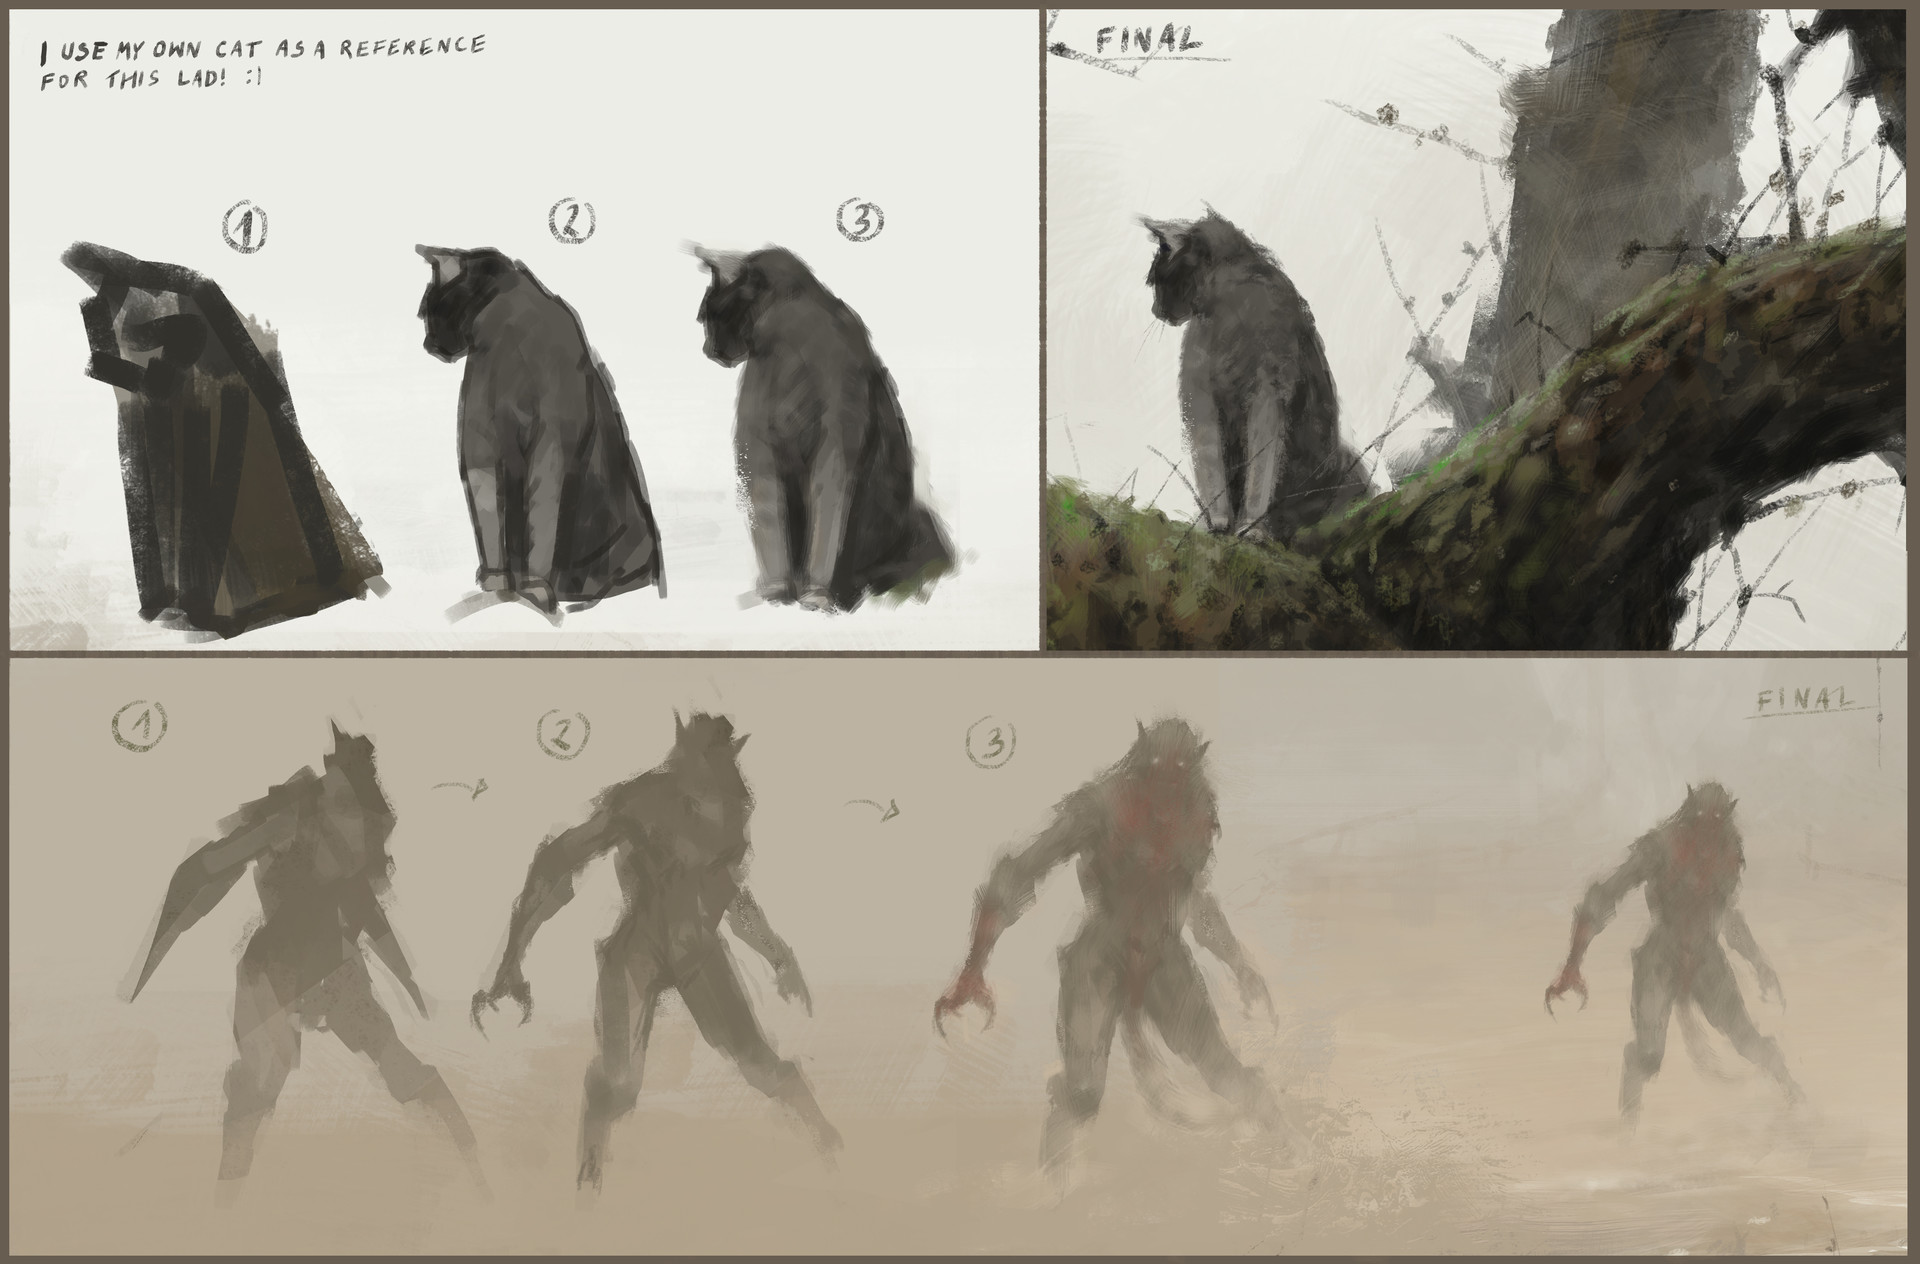 Jakub rozalski cat see everything 01process3